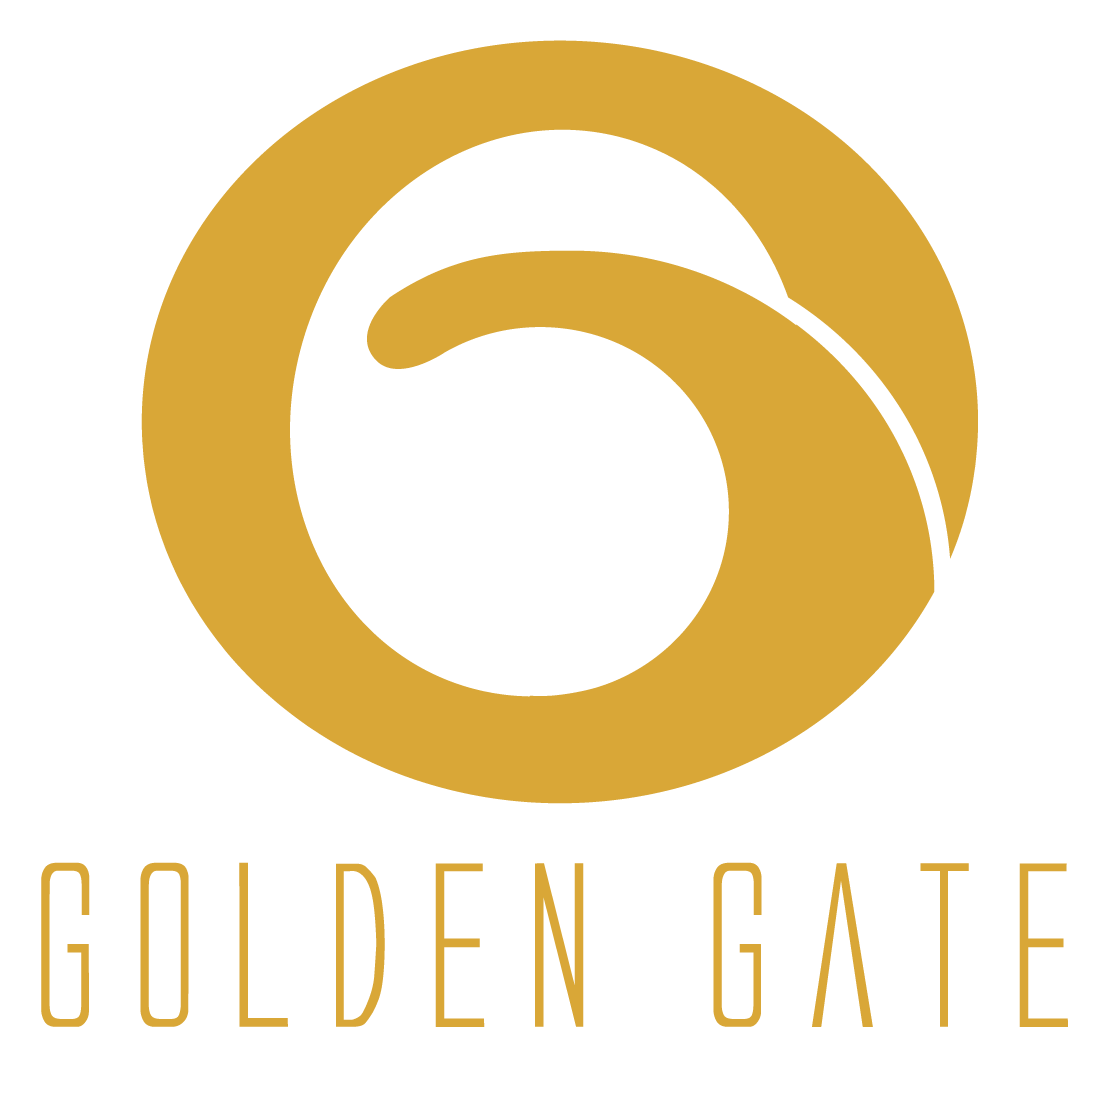 Golden Gate Restaurants